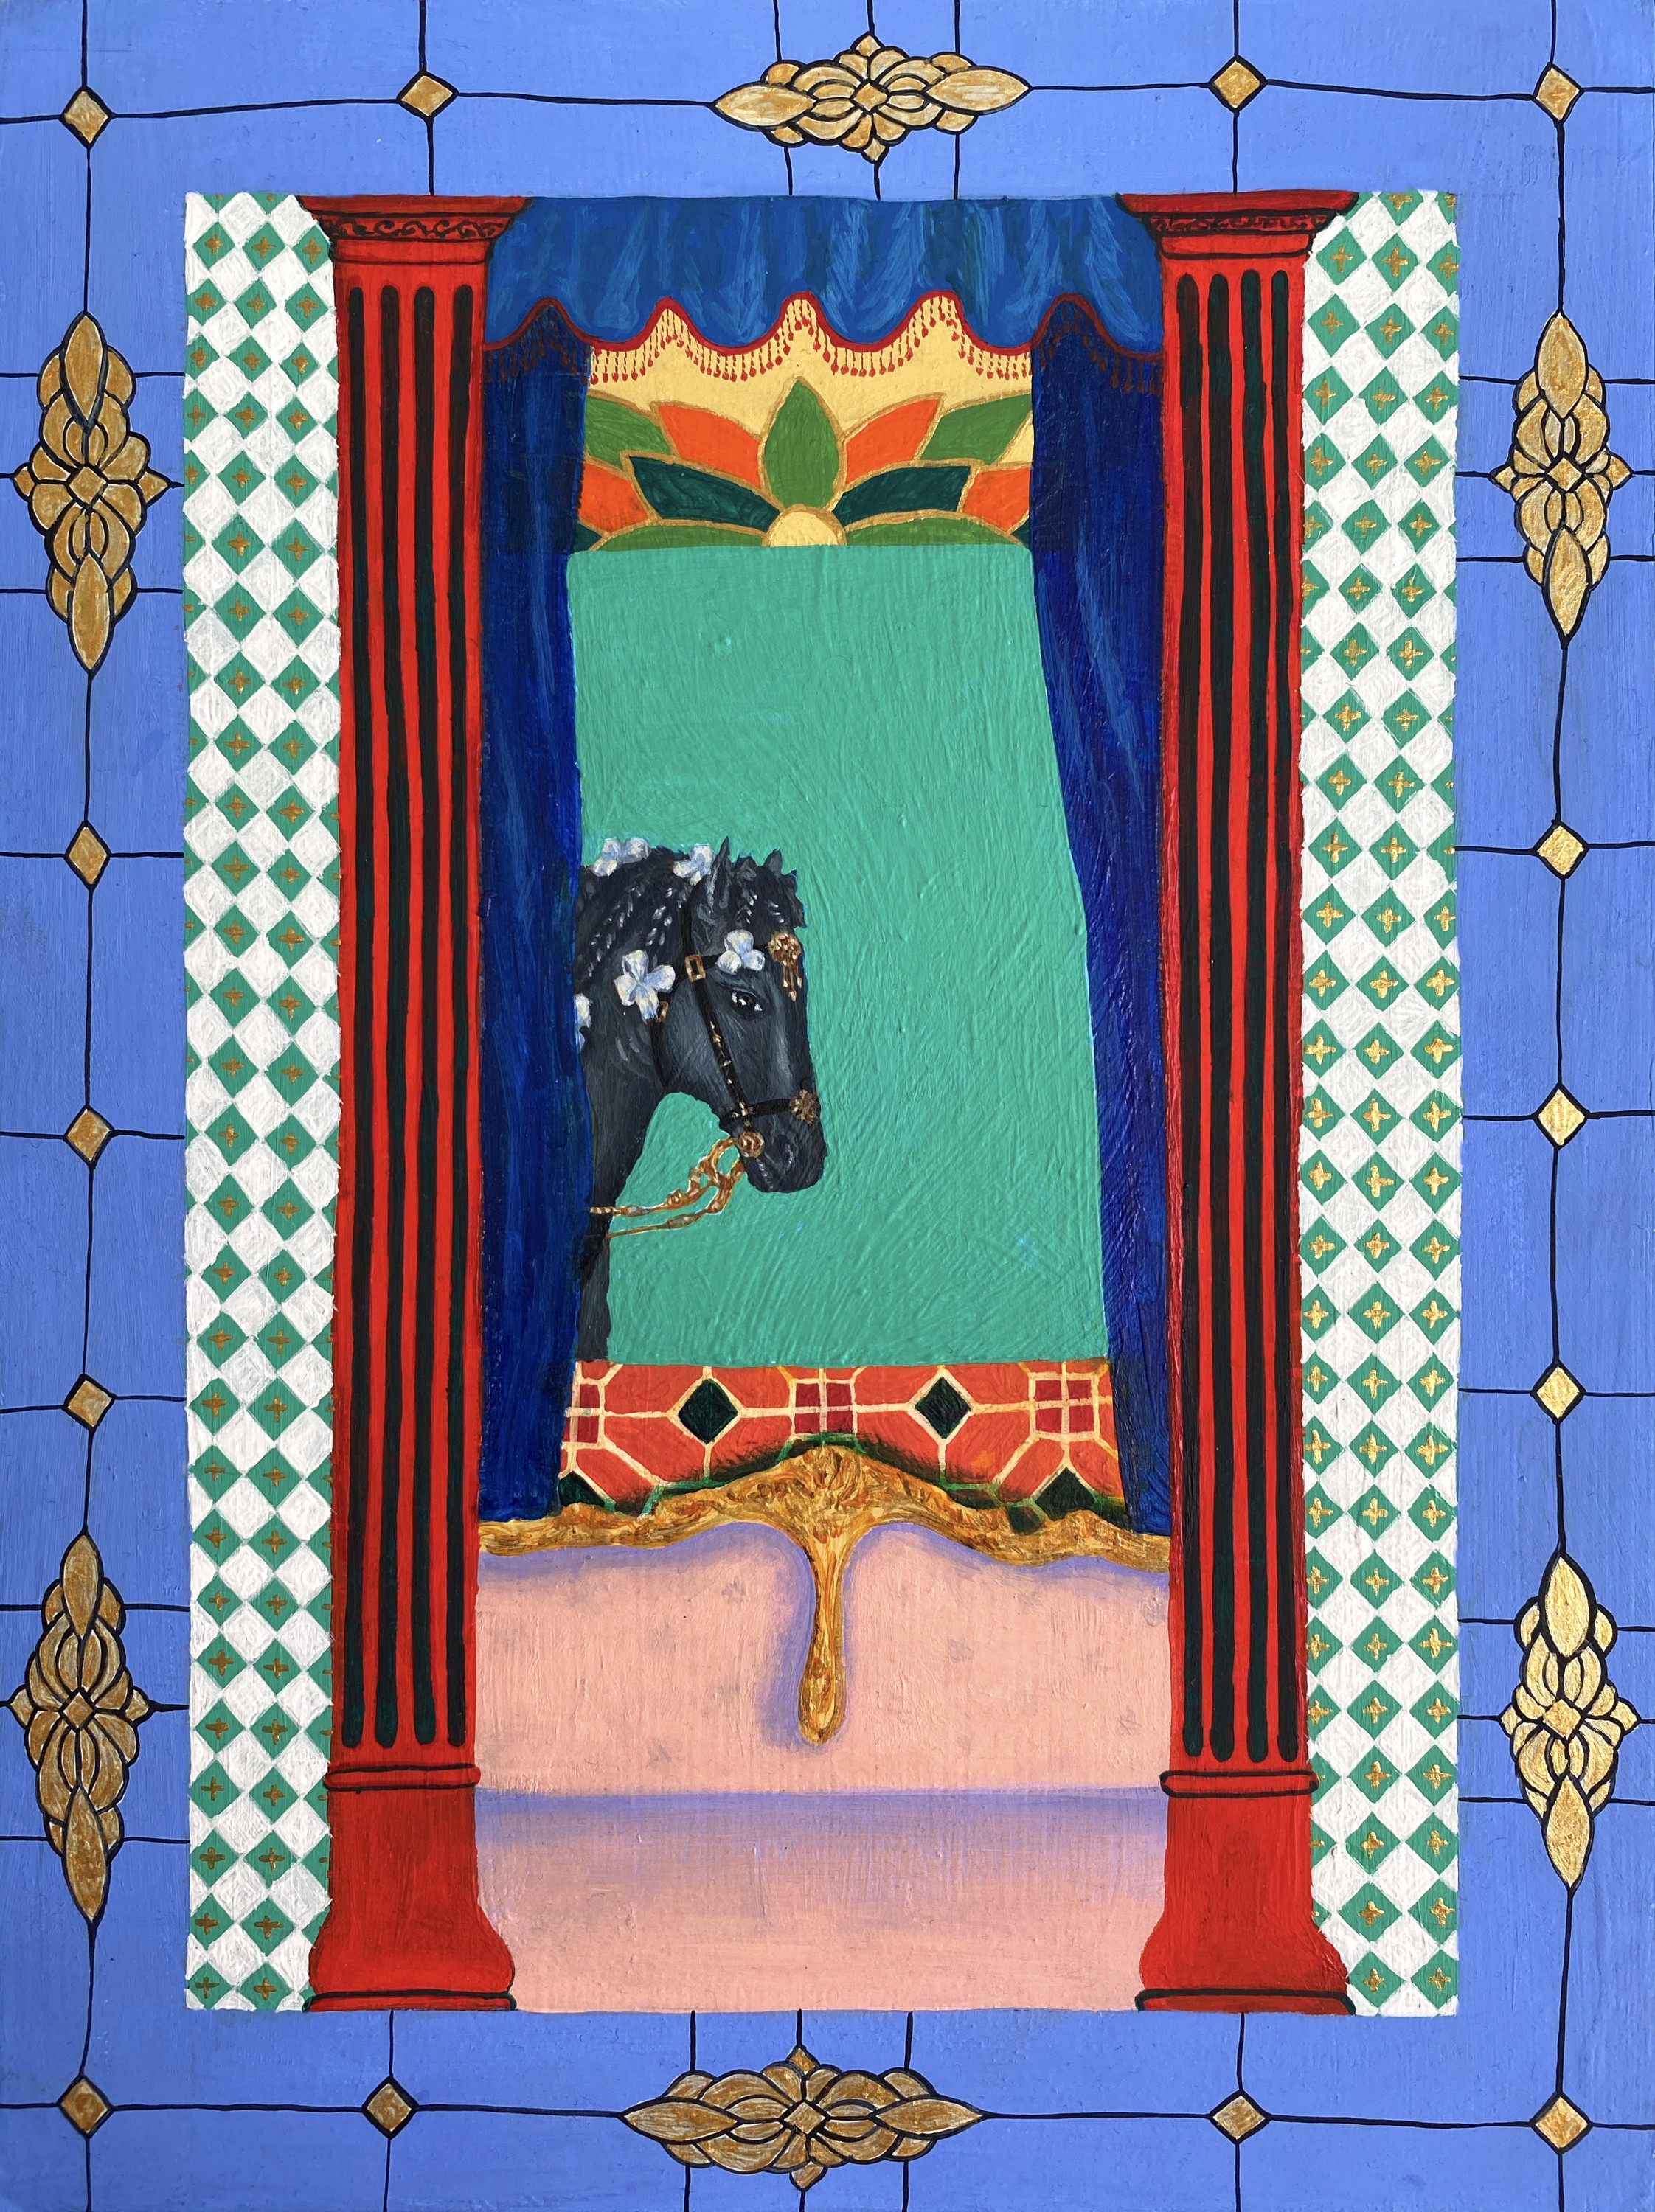 The painting consists of a horse's head framed by a window. In the room there is a pink rococo style sofa and ornate curtains. The furniture is contrasted with tiles and red columns. The outer border of the painting is pastel blue and has glasswork detail